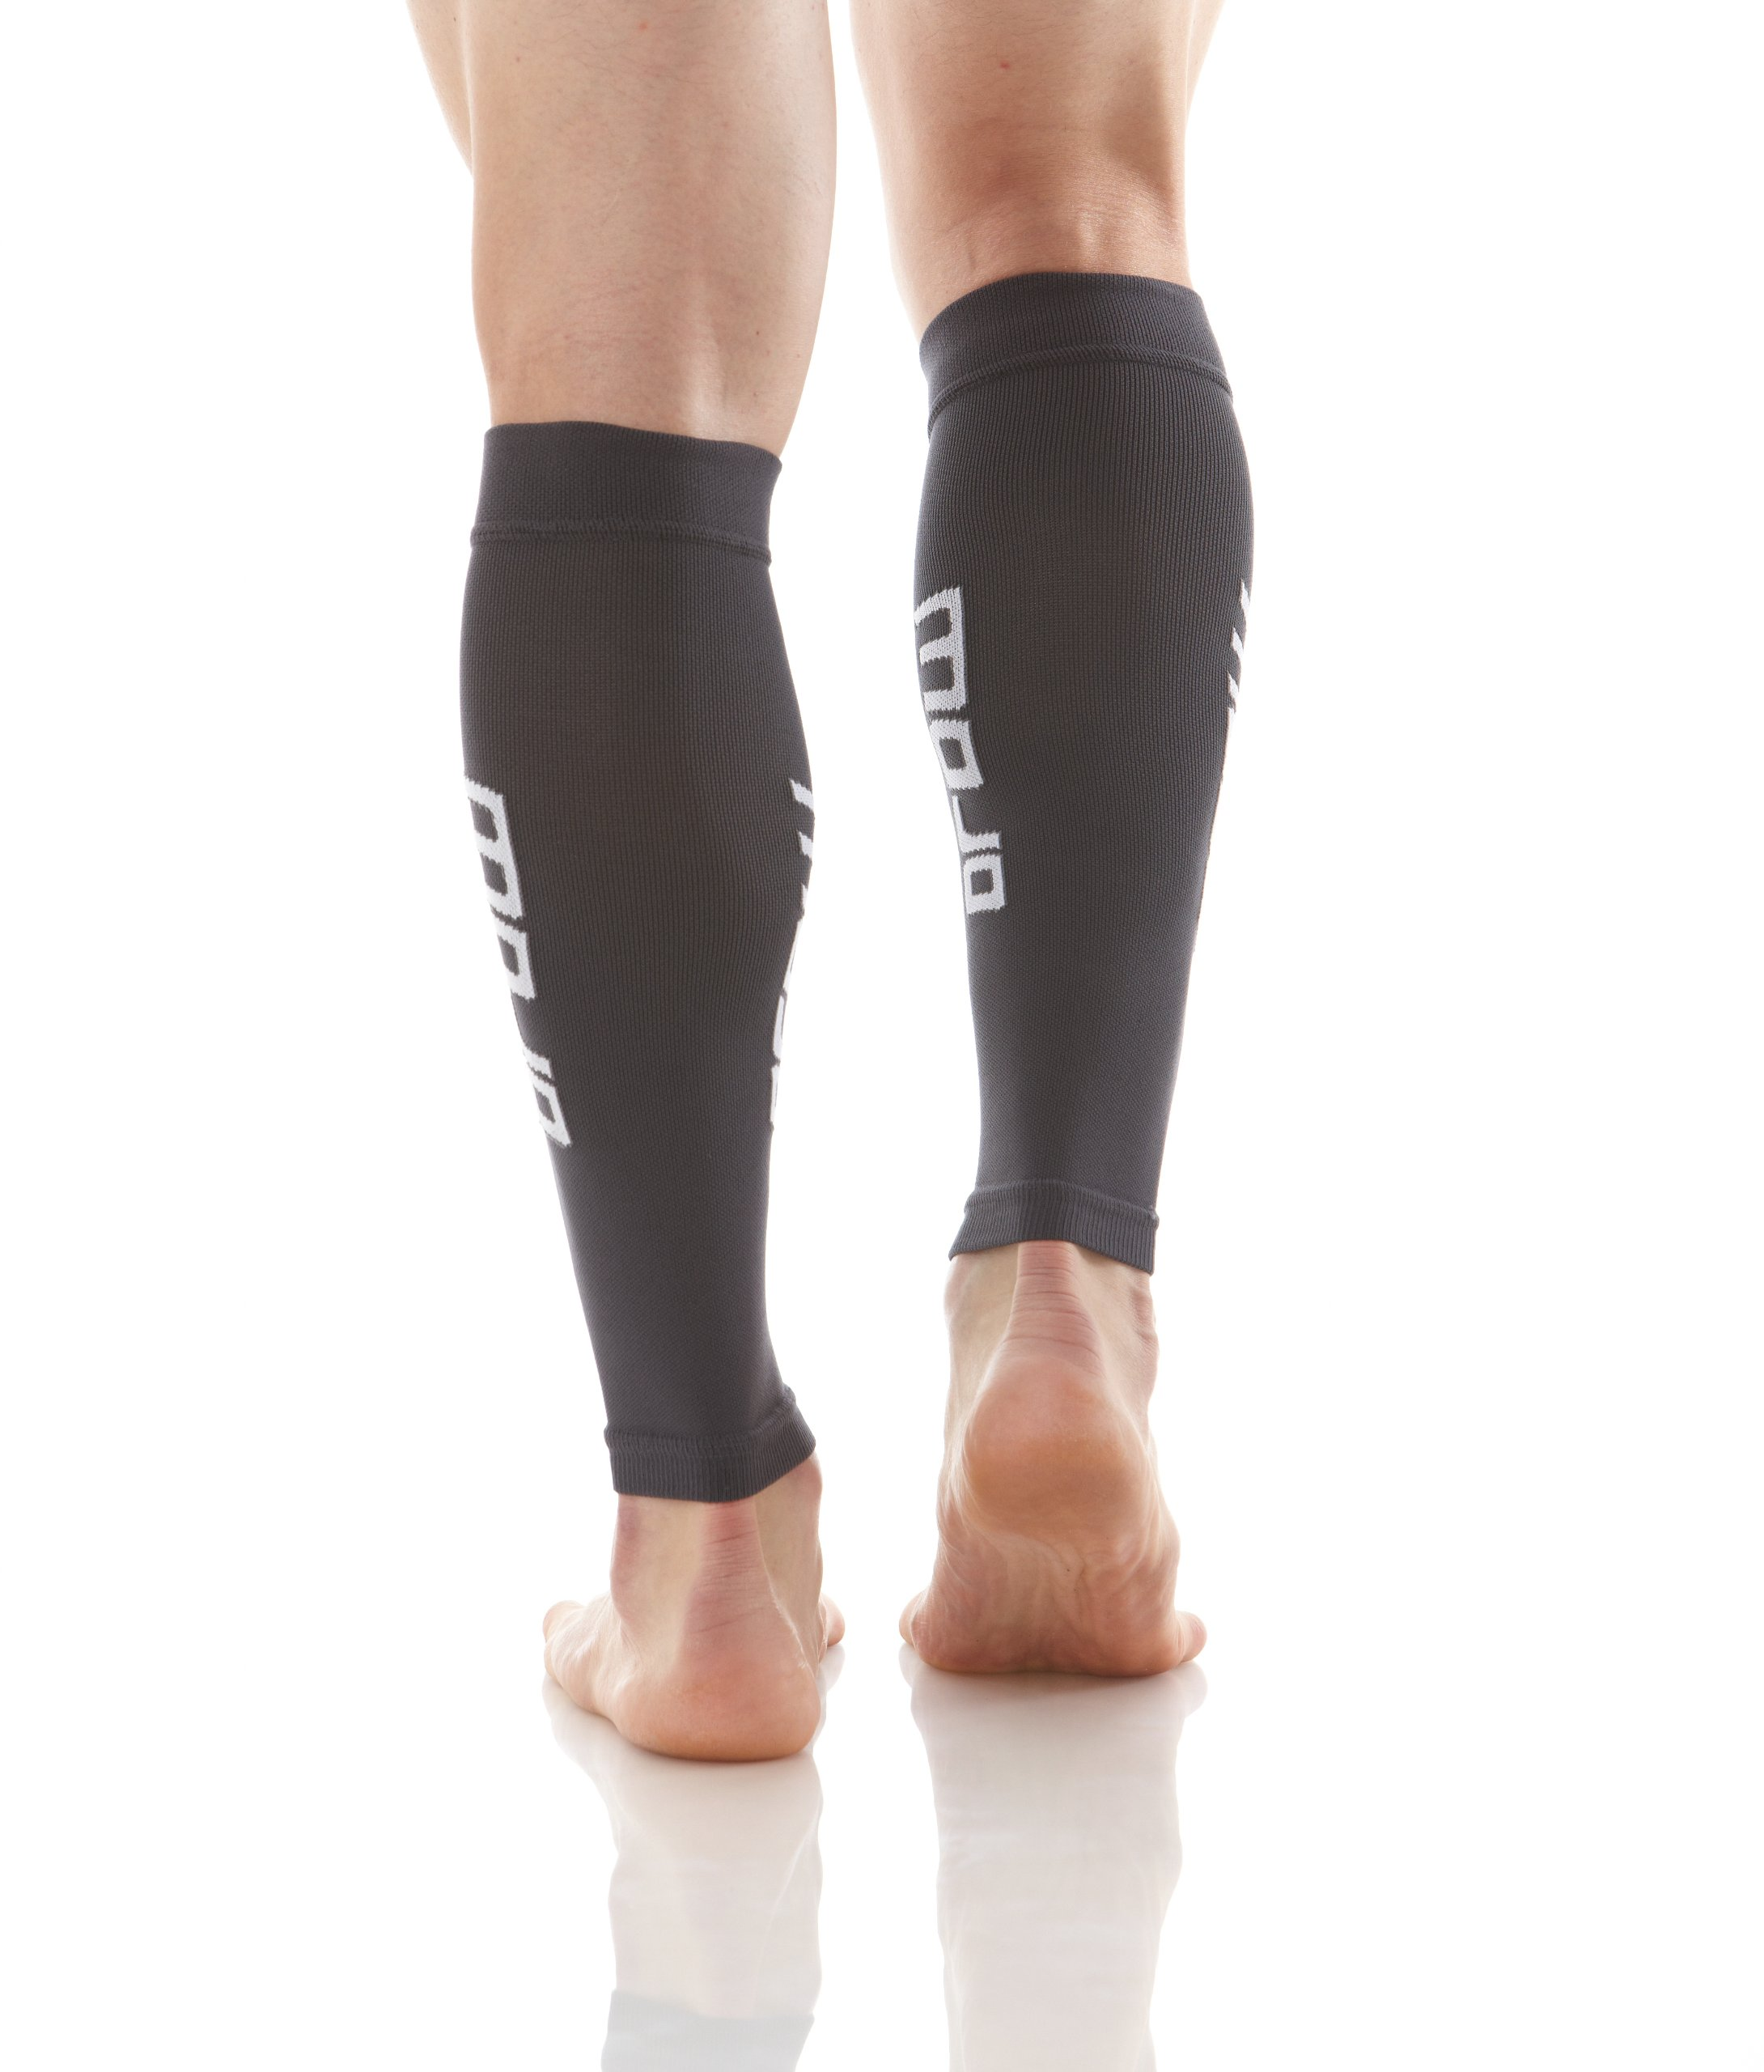 Compression Calf Sleeve, Pair of 2 Sleeves for Calf Strains, Running, Shin Splints, Varicose Veins, Injury Recovery & Prevention, 20-30mmHG, Mojo Compression (Black/Large) (Medium, Gray)